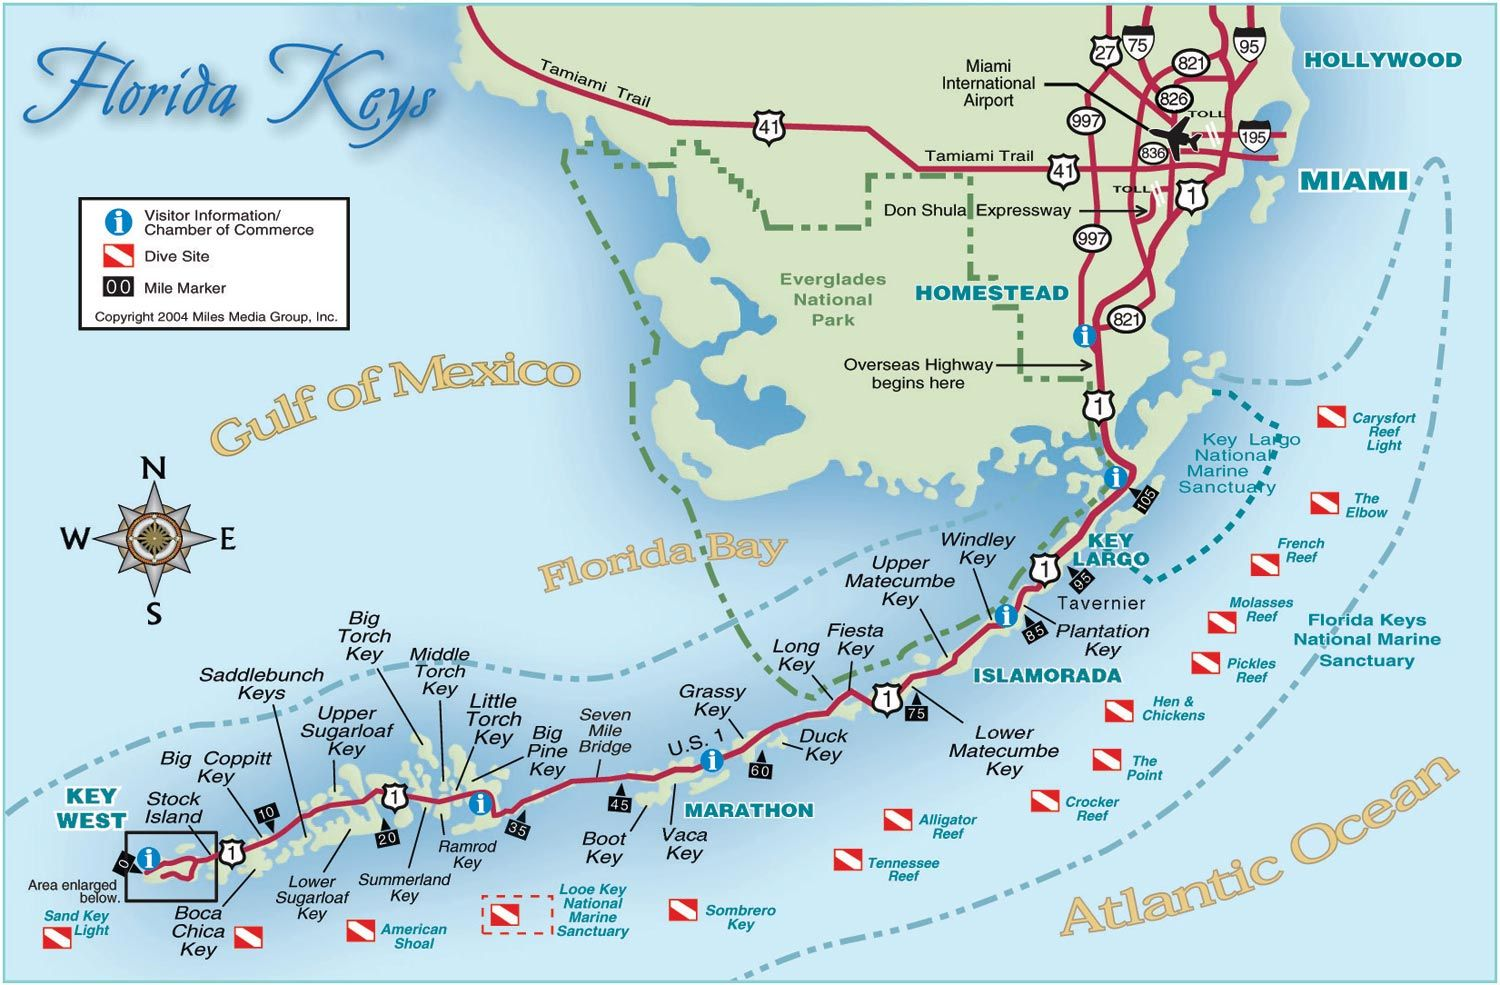 Florida Key Map.Image Detail For Florida Keys And Key West Real Estate And Tourist